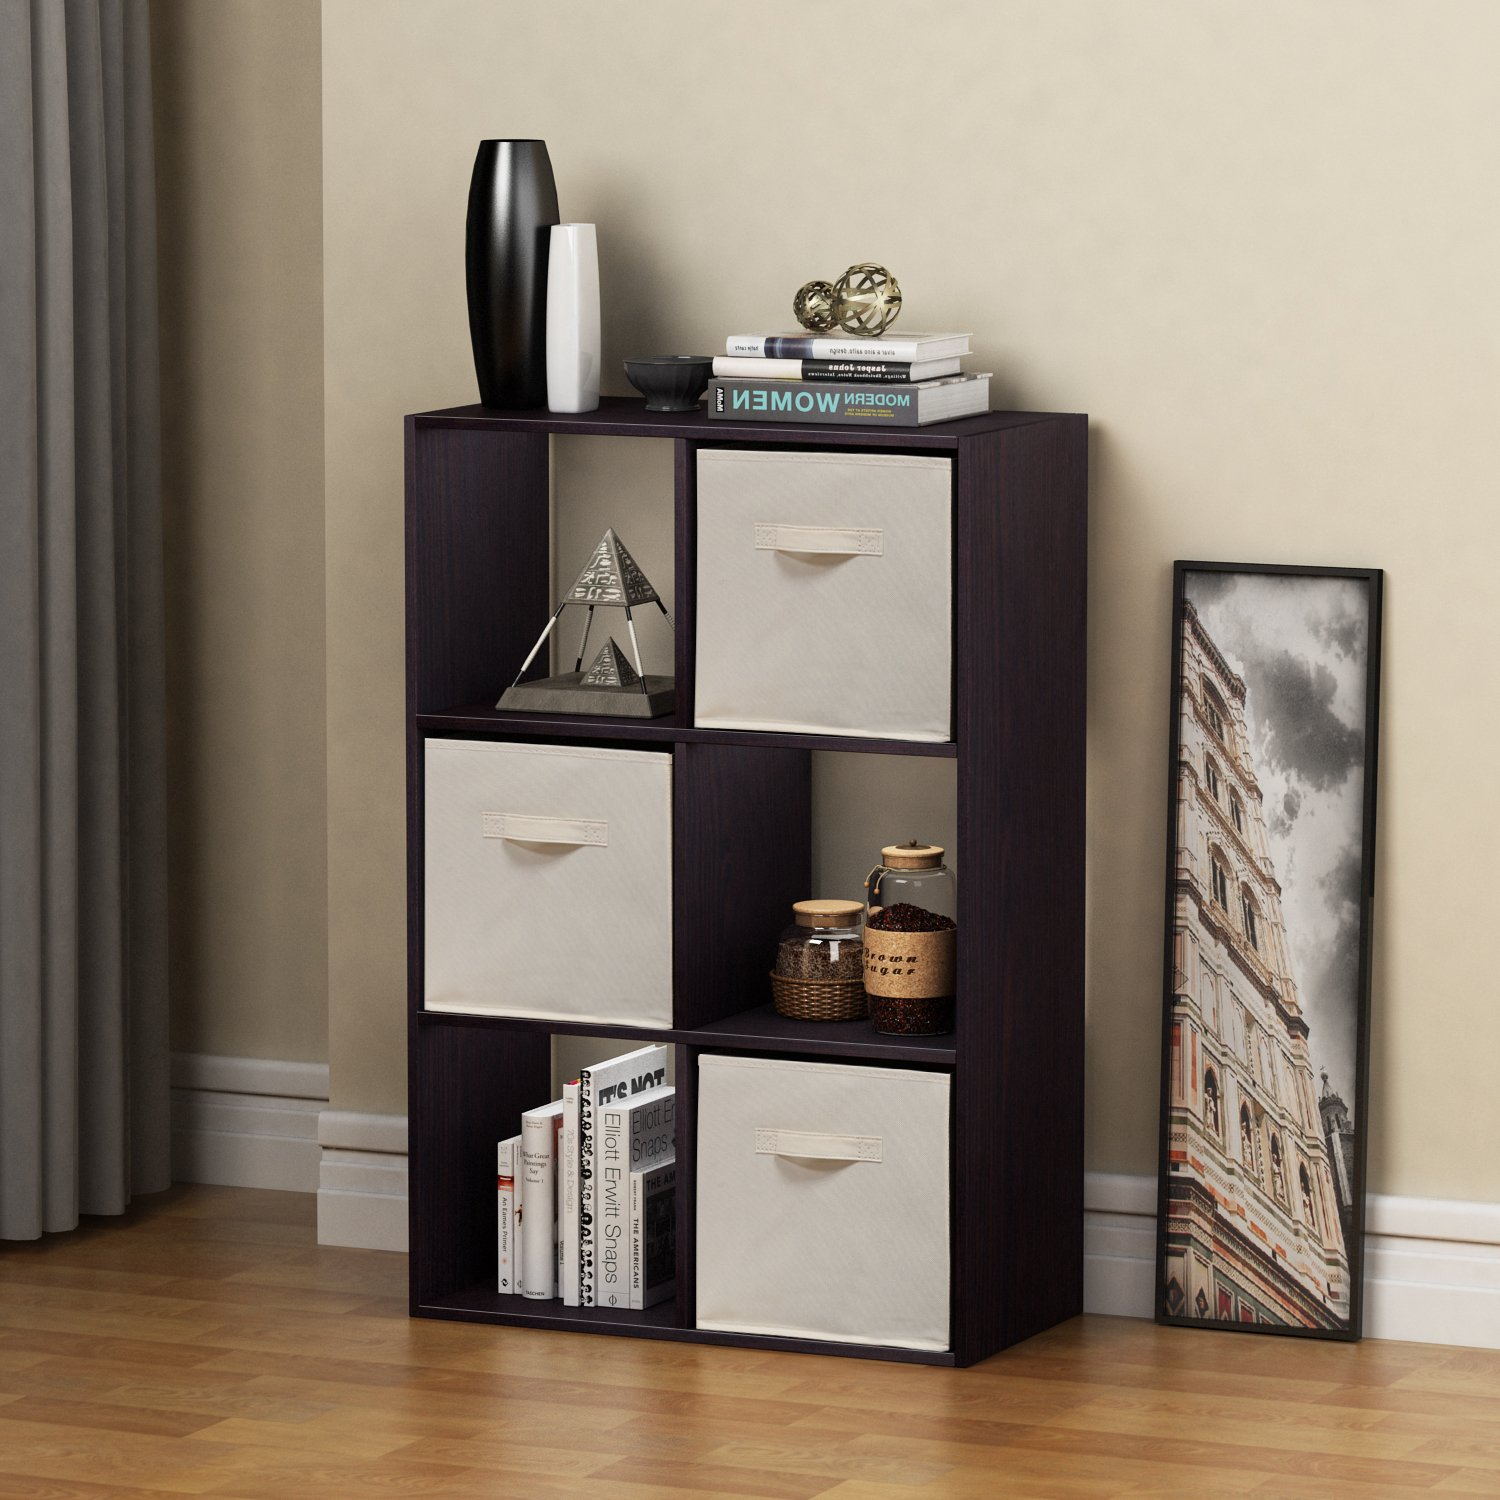 Homestar 6 Cube with Fabric Bins, Black Brown